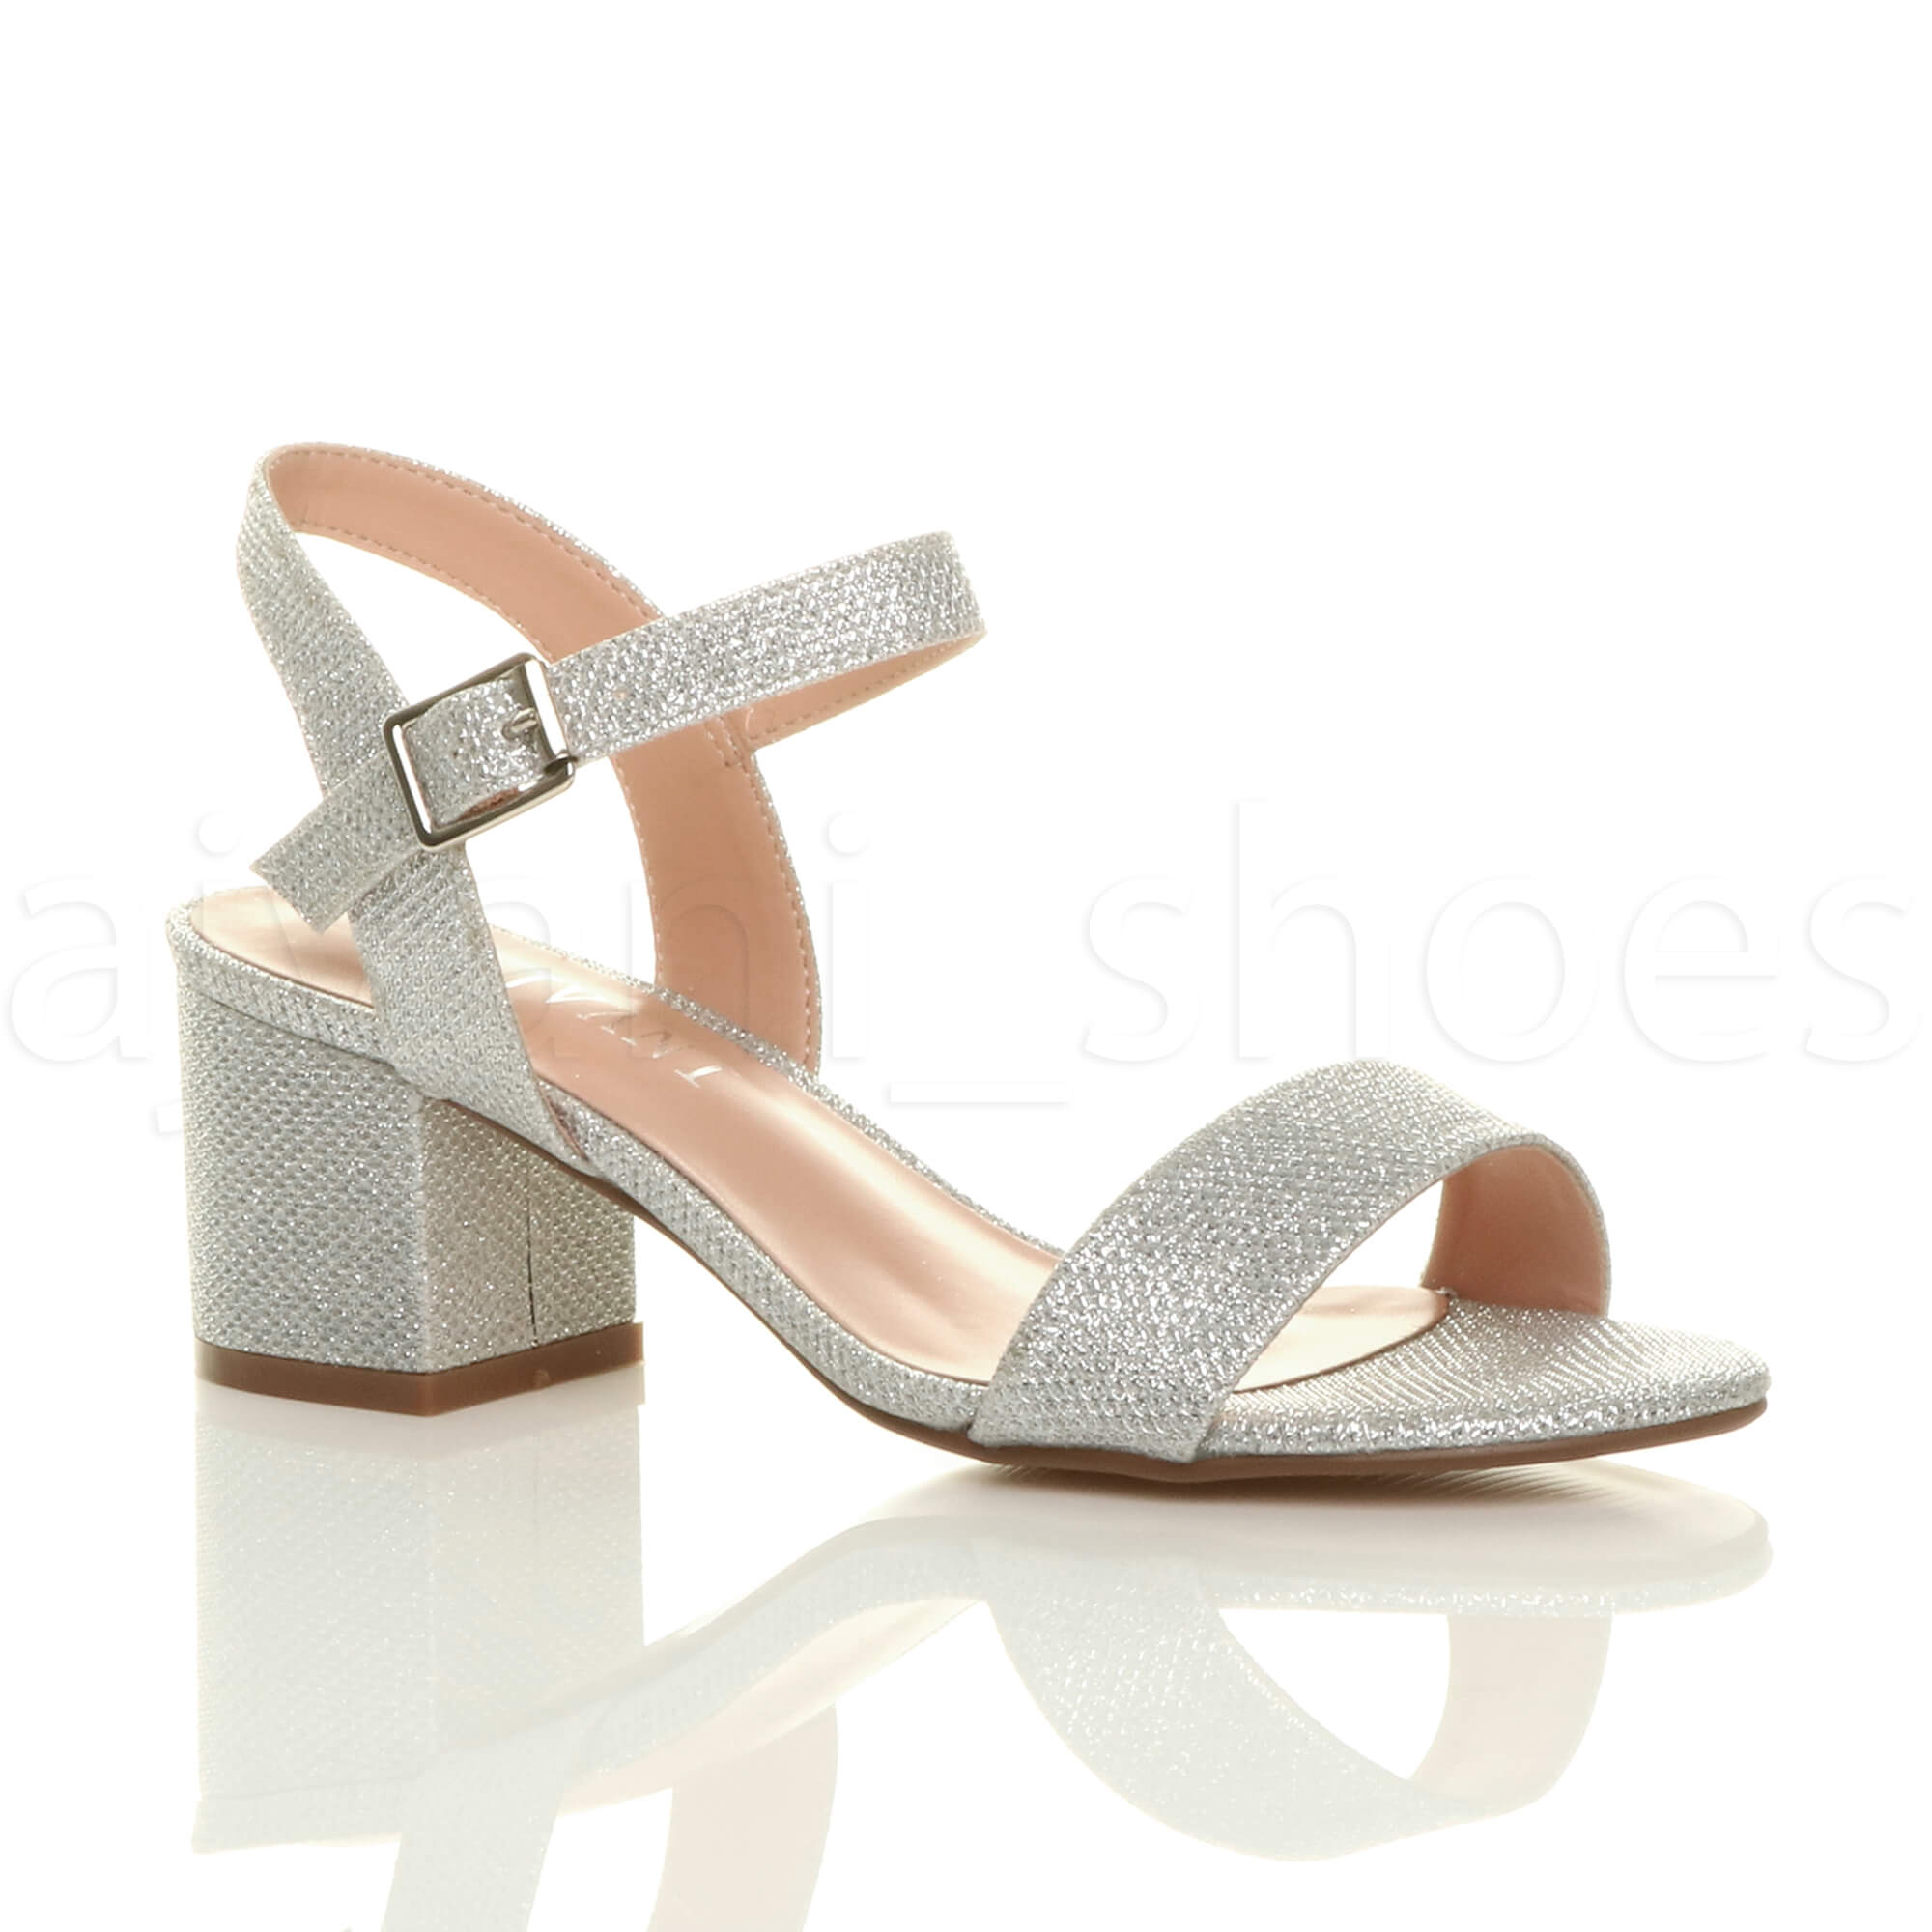 WOMENS-LADIES-MID-LOW-BLOCK-HEEL-PEEP-TOE-ANKLE-STRAP-STRAPPY-PARTY-SANDALS-SIZE